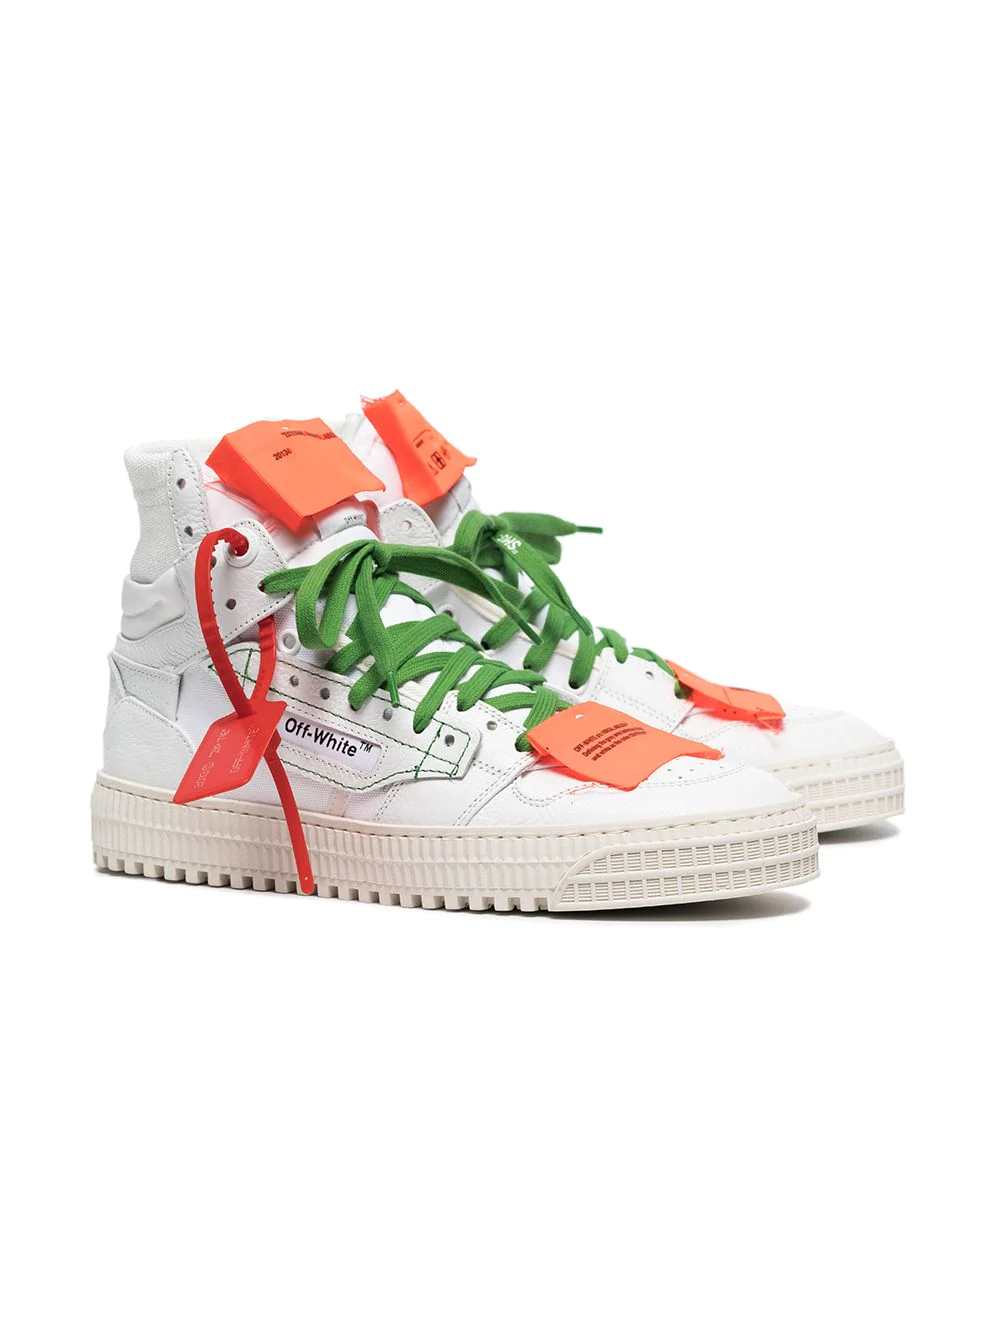 OFF-WHITE white Off Court 3.0 leather sneakers, 1126лв.